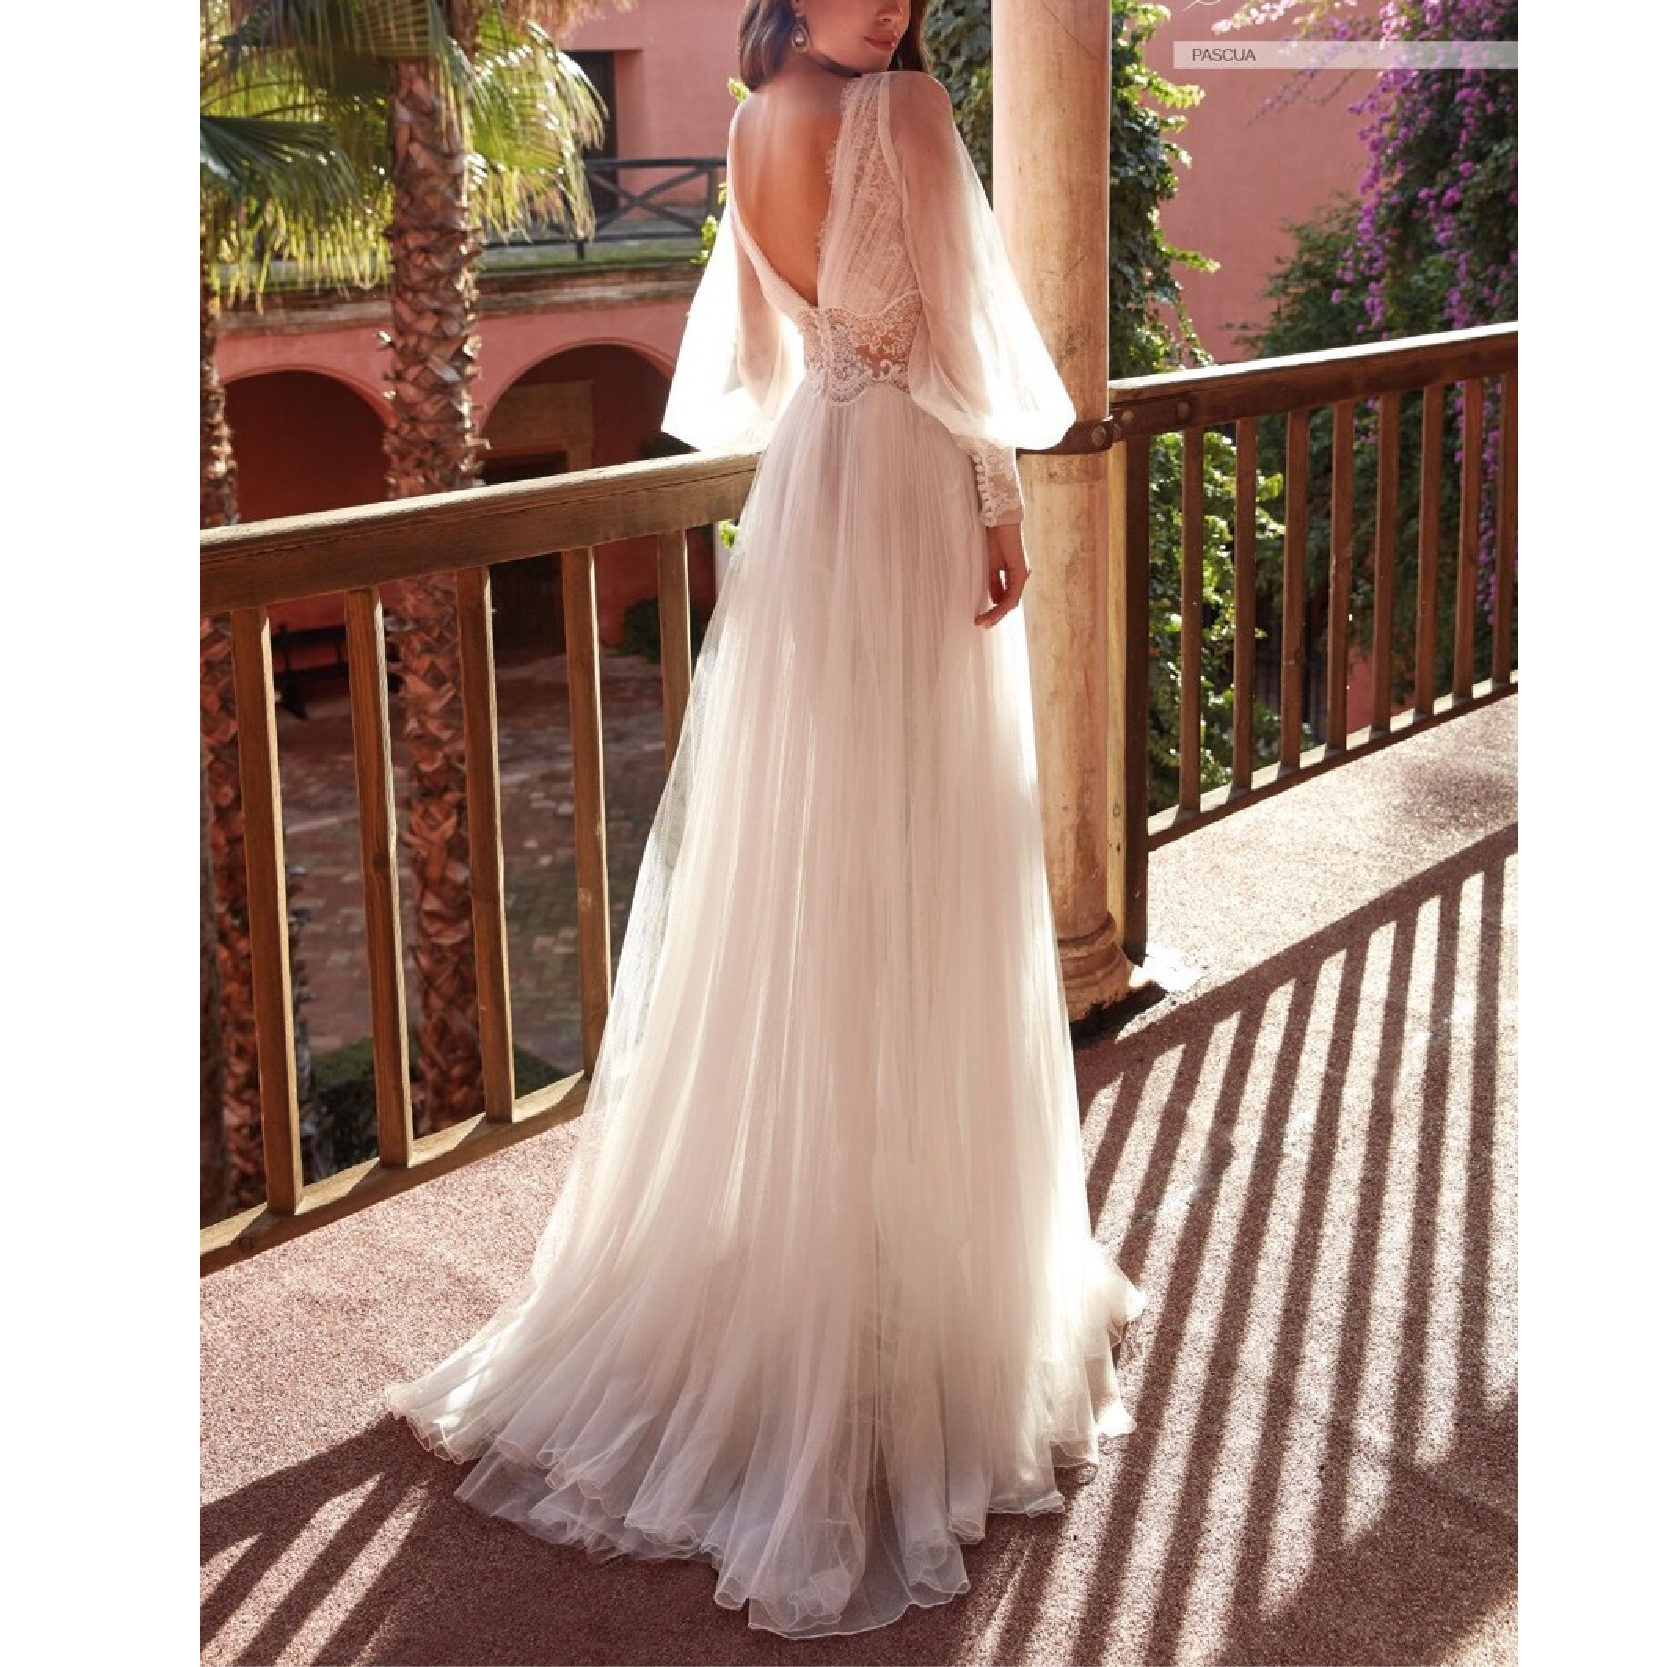 2021 Summer New Arrival Ladies Dress Casual Brand Sexy V-Neck Long-Sleeved Lace Mesh Stitching Gown Suitable for Formal Partie 2